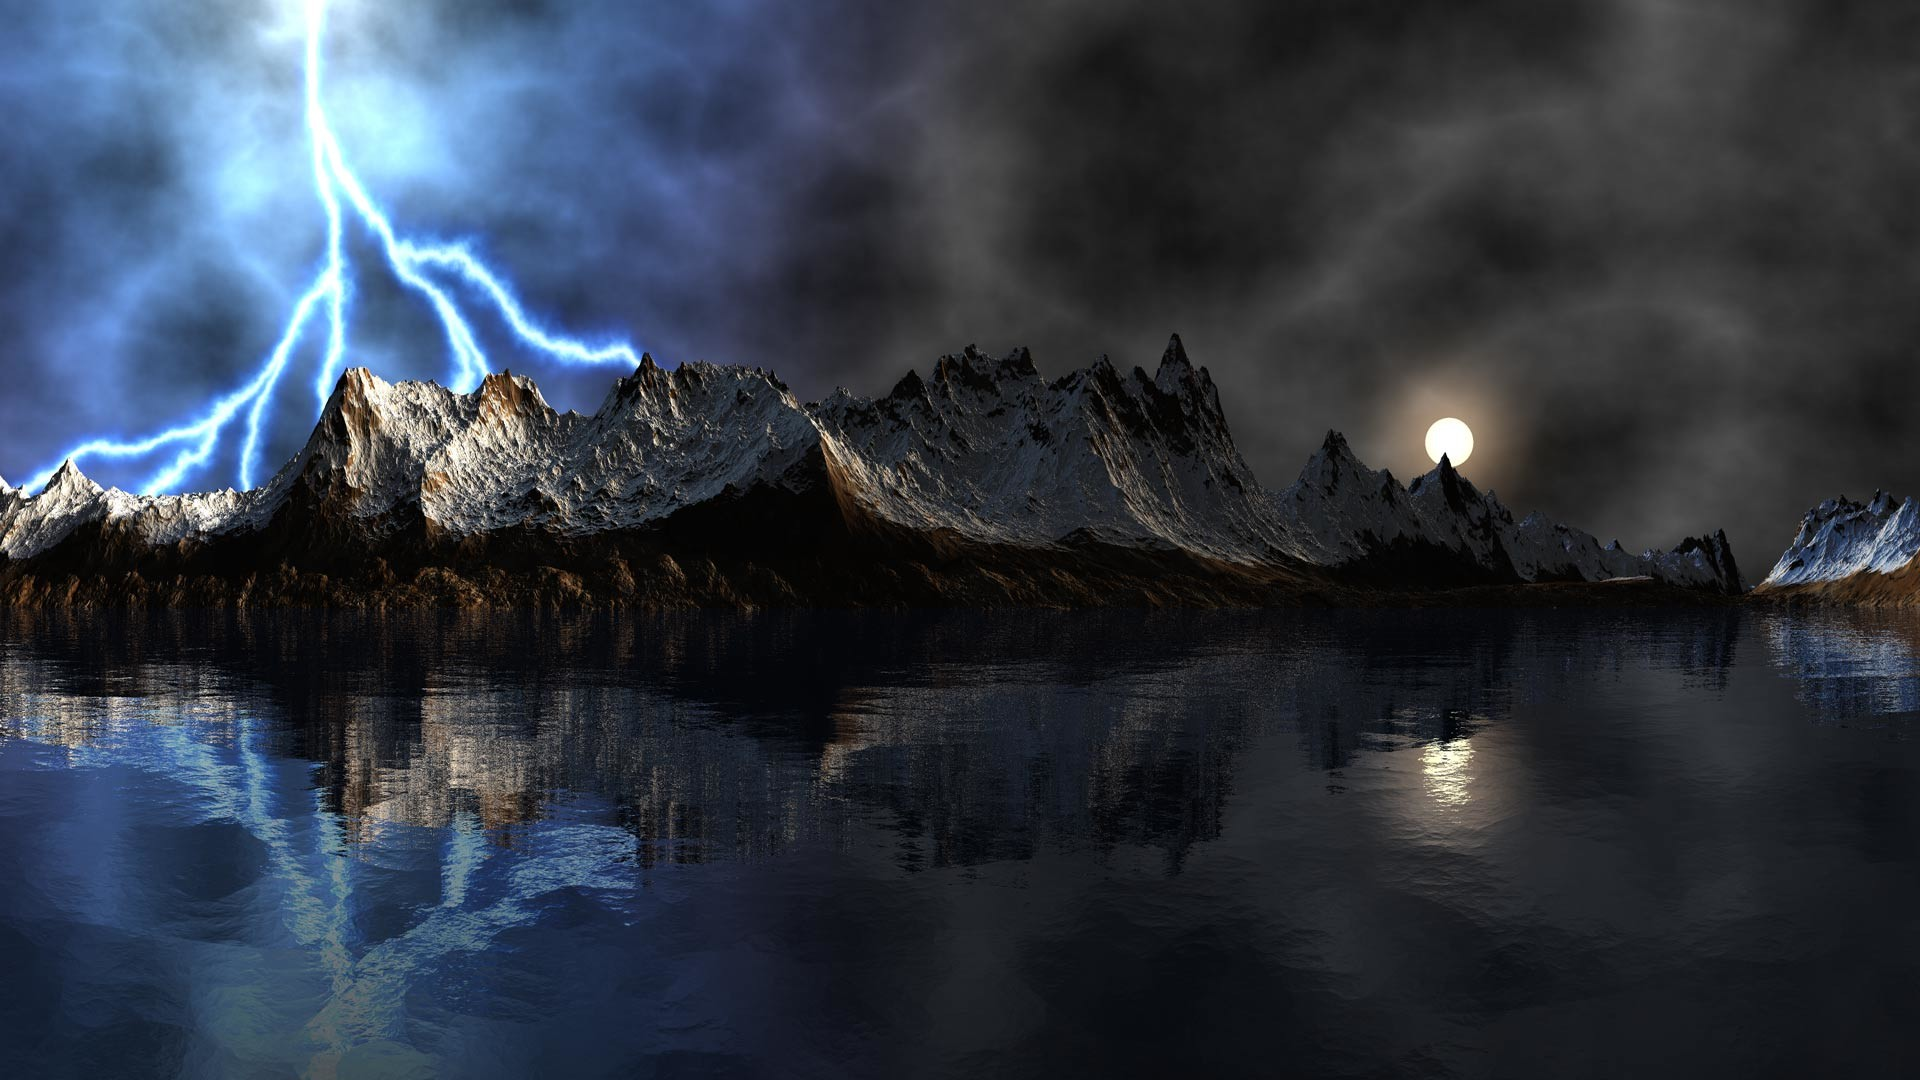 Res: 1920x1080, wallpaper.wiki-Coolest-Desktop-Backgrounds-Pictures-HD-Free-